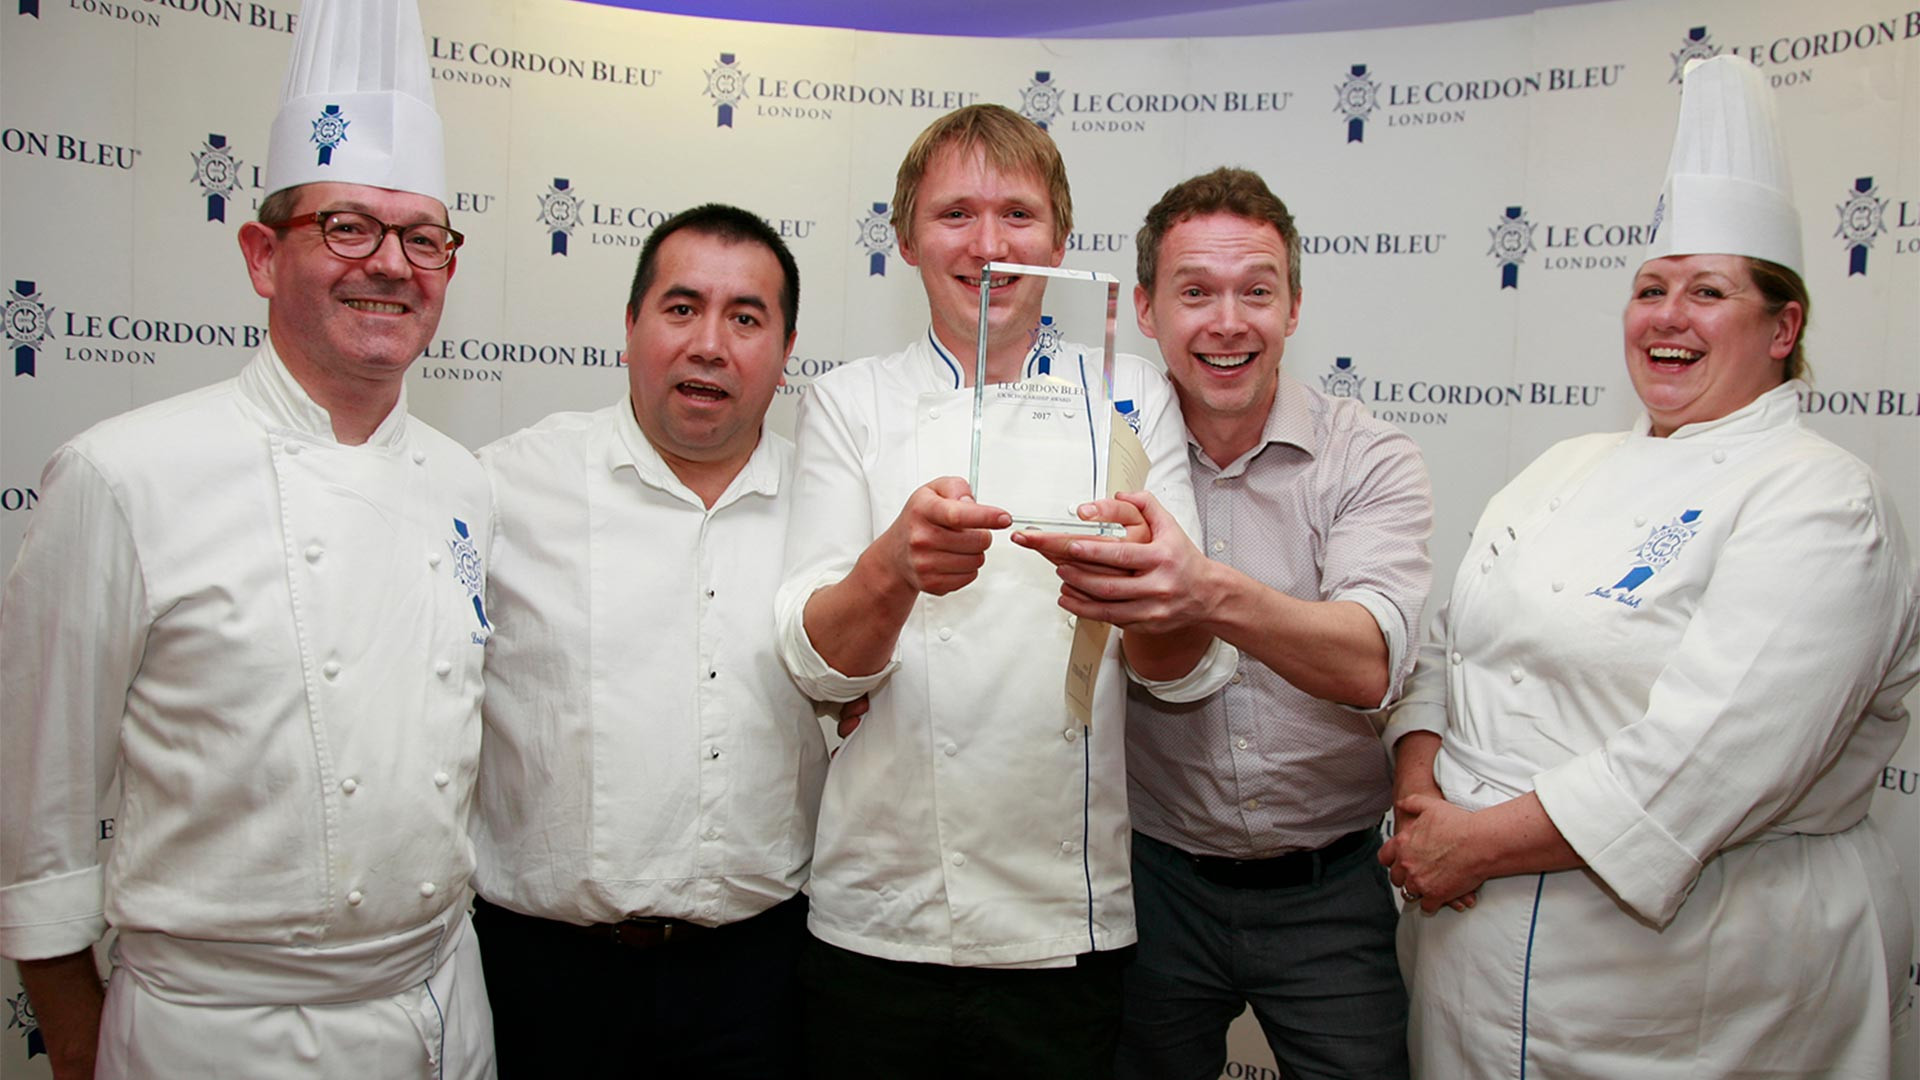 The winners of Le Cordon Bleu's UK Scholarship Award 2017